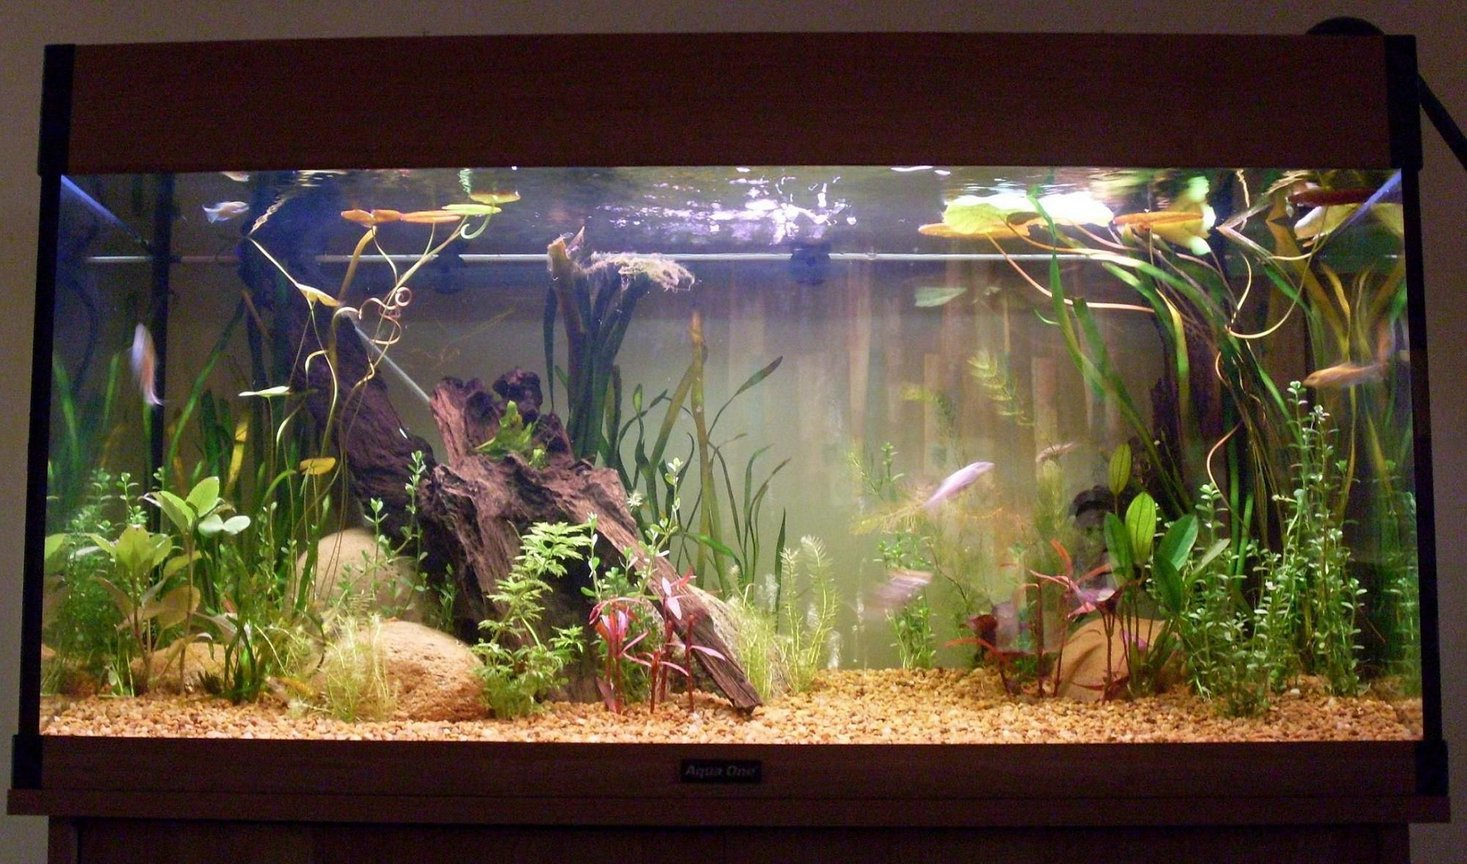 20 gallons planted tank (mostly live plants and fish) - The New Tank